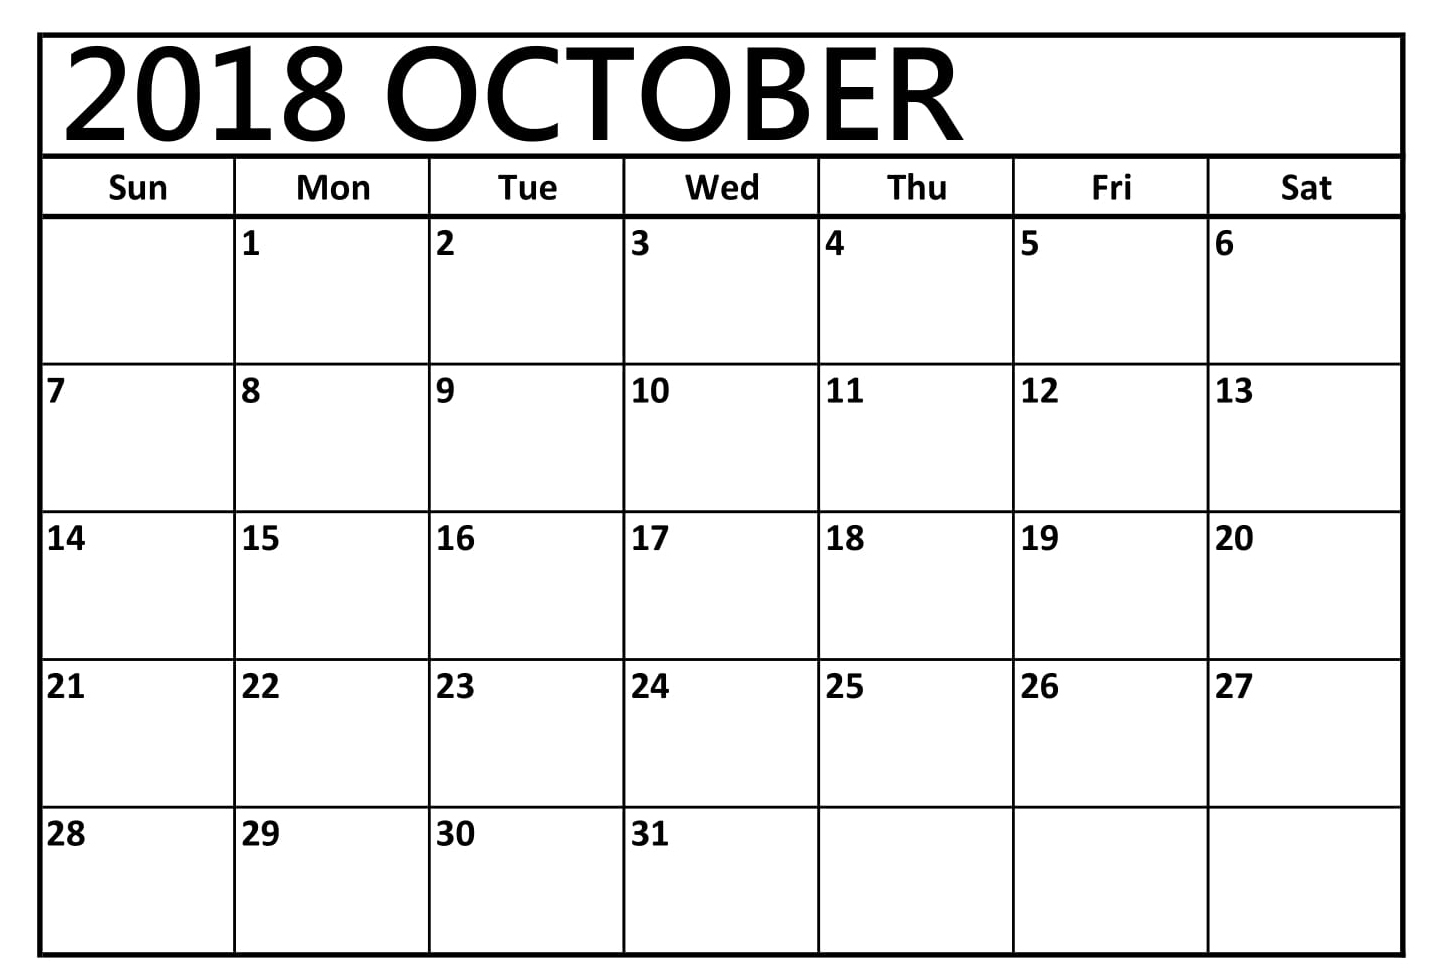 free printable calendar october 2018 monthly paper worksheets Calendar October 2018 Printables erdferdf